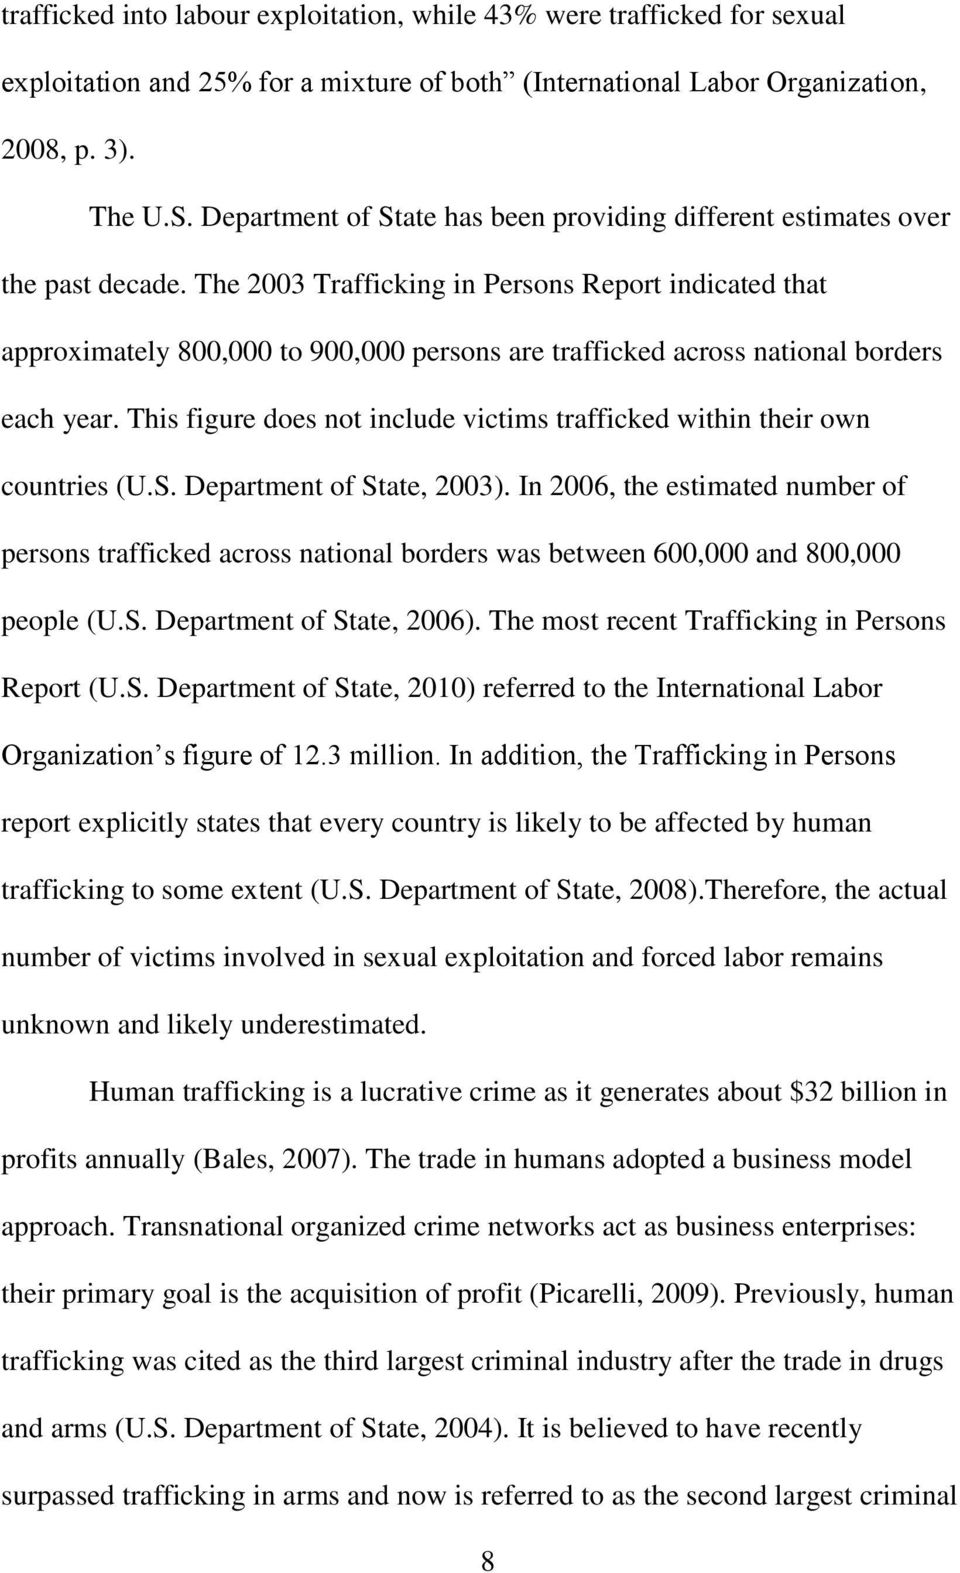 The 2003 Trafficking in Persons Report indicated that approximately 800,000 to 900,000 persons are trafficked across national borders each year.